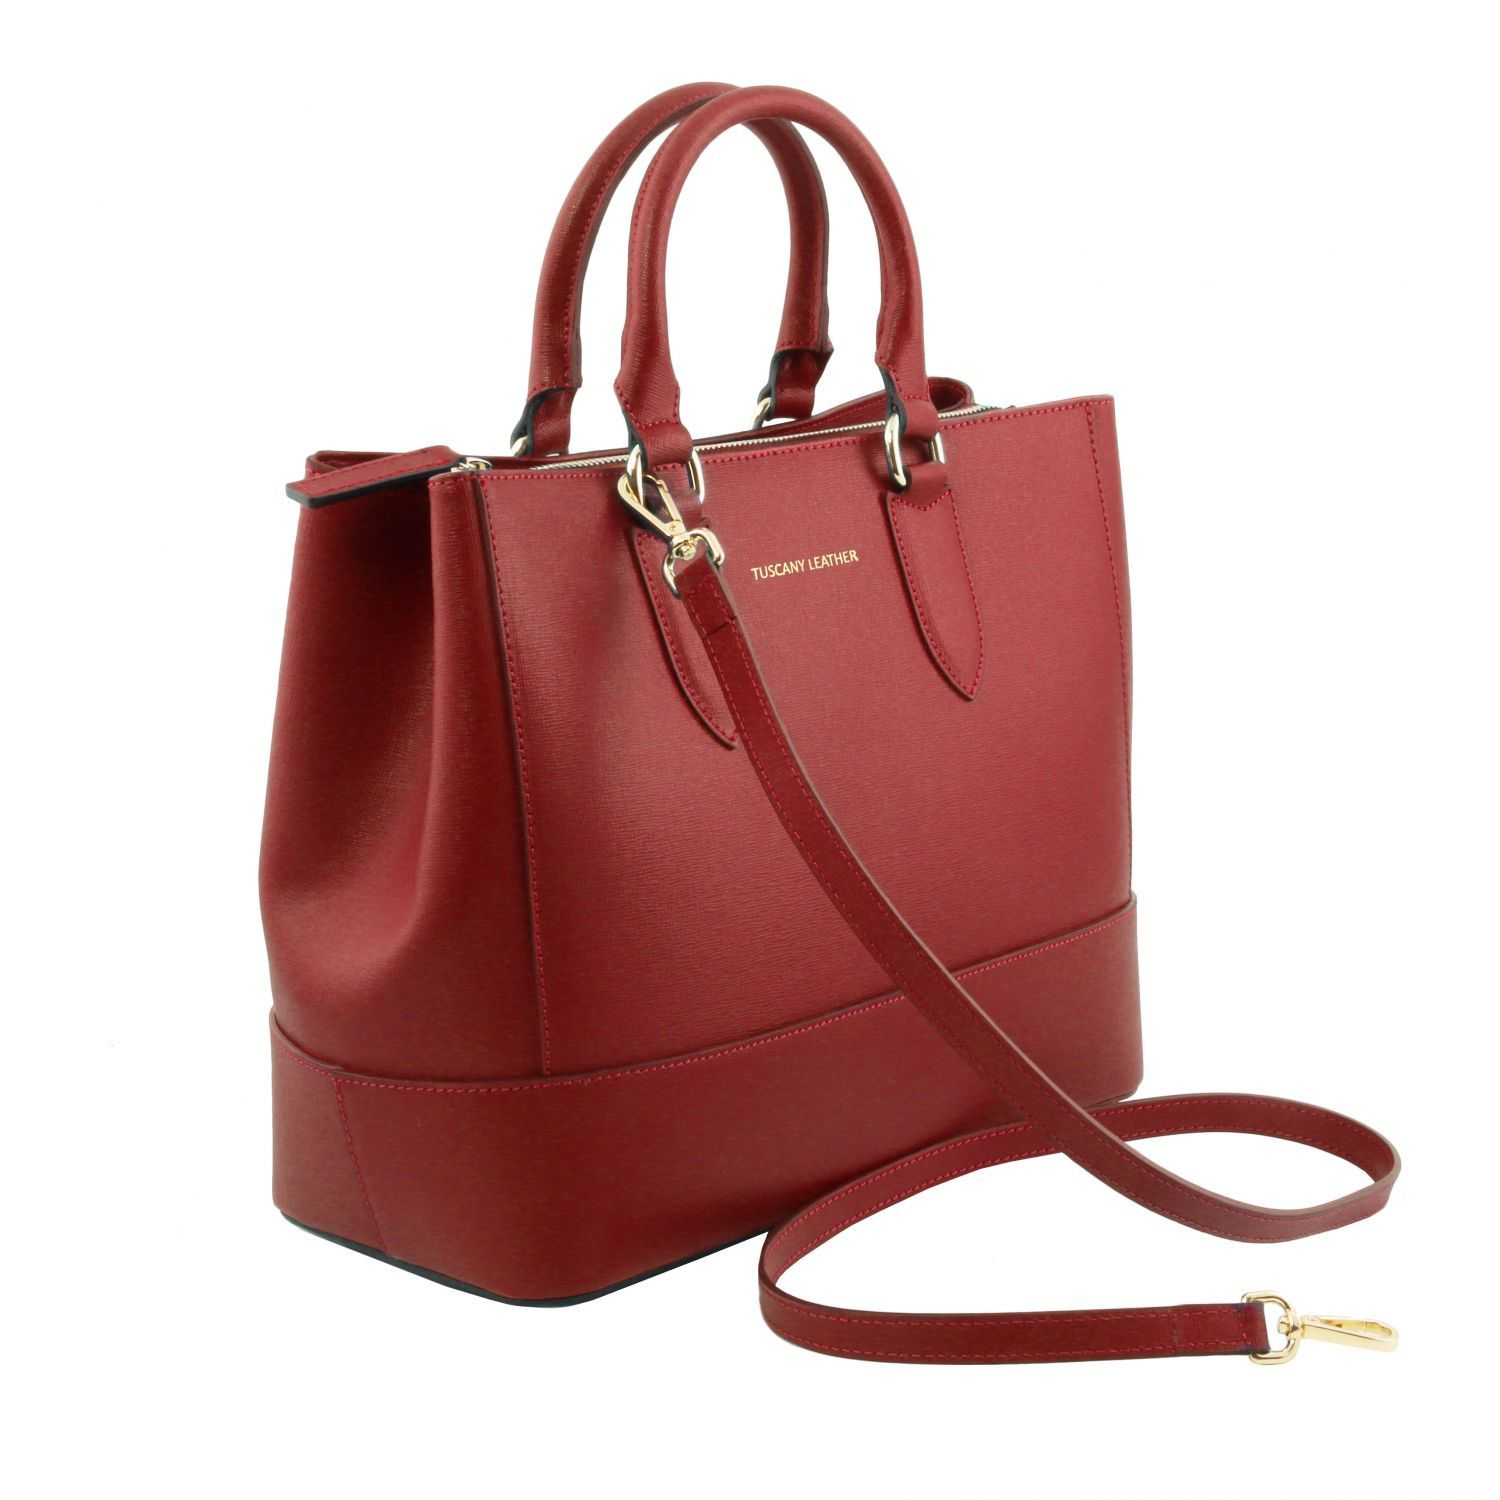 Tuscany Leather TL Bag Sac à main en cuir Saffiano - TL141638 (Rouge)